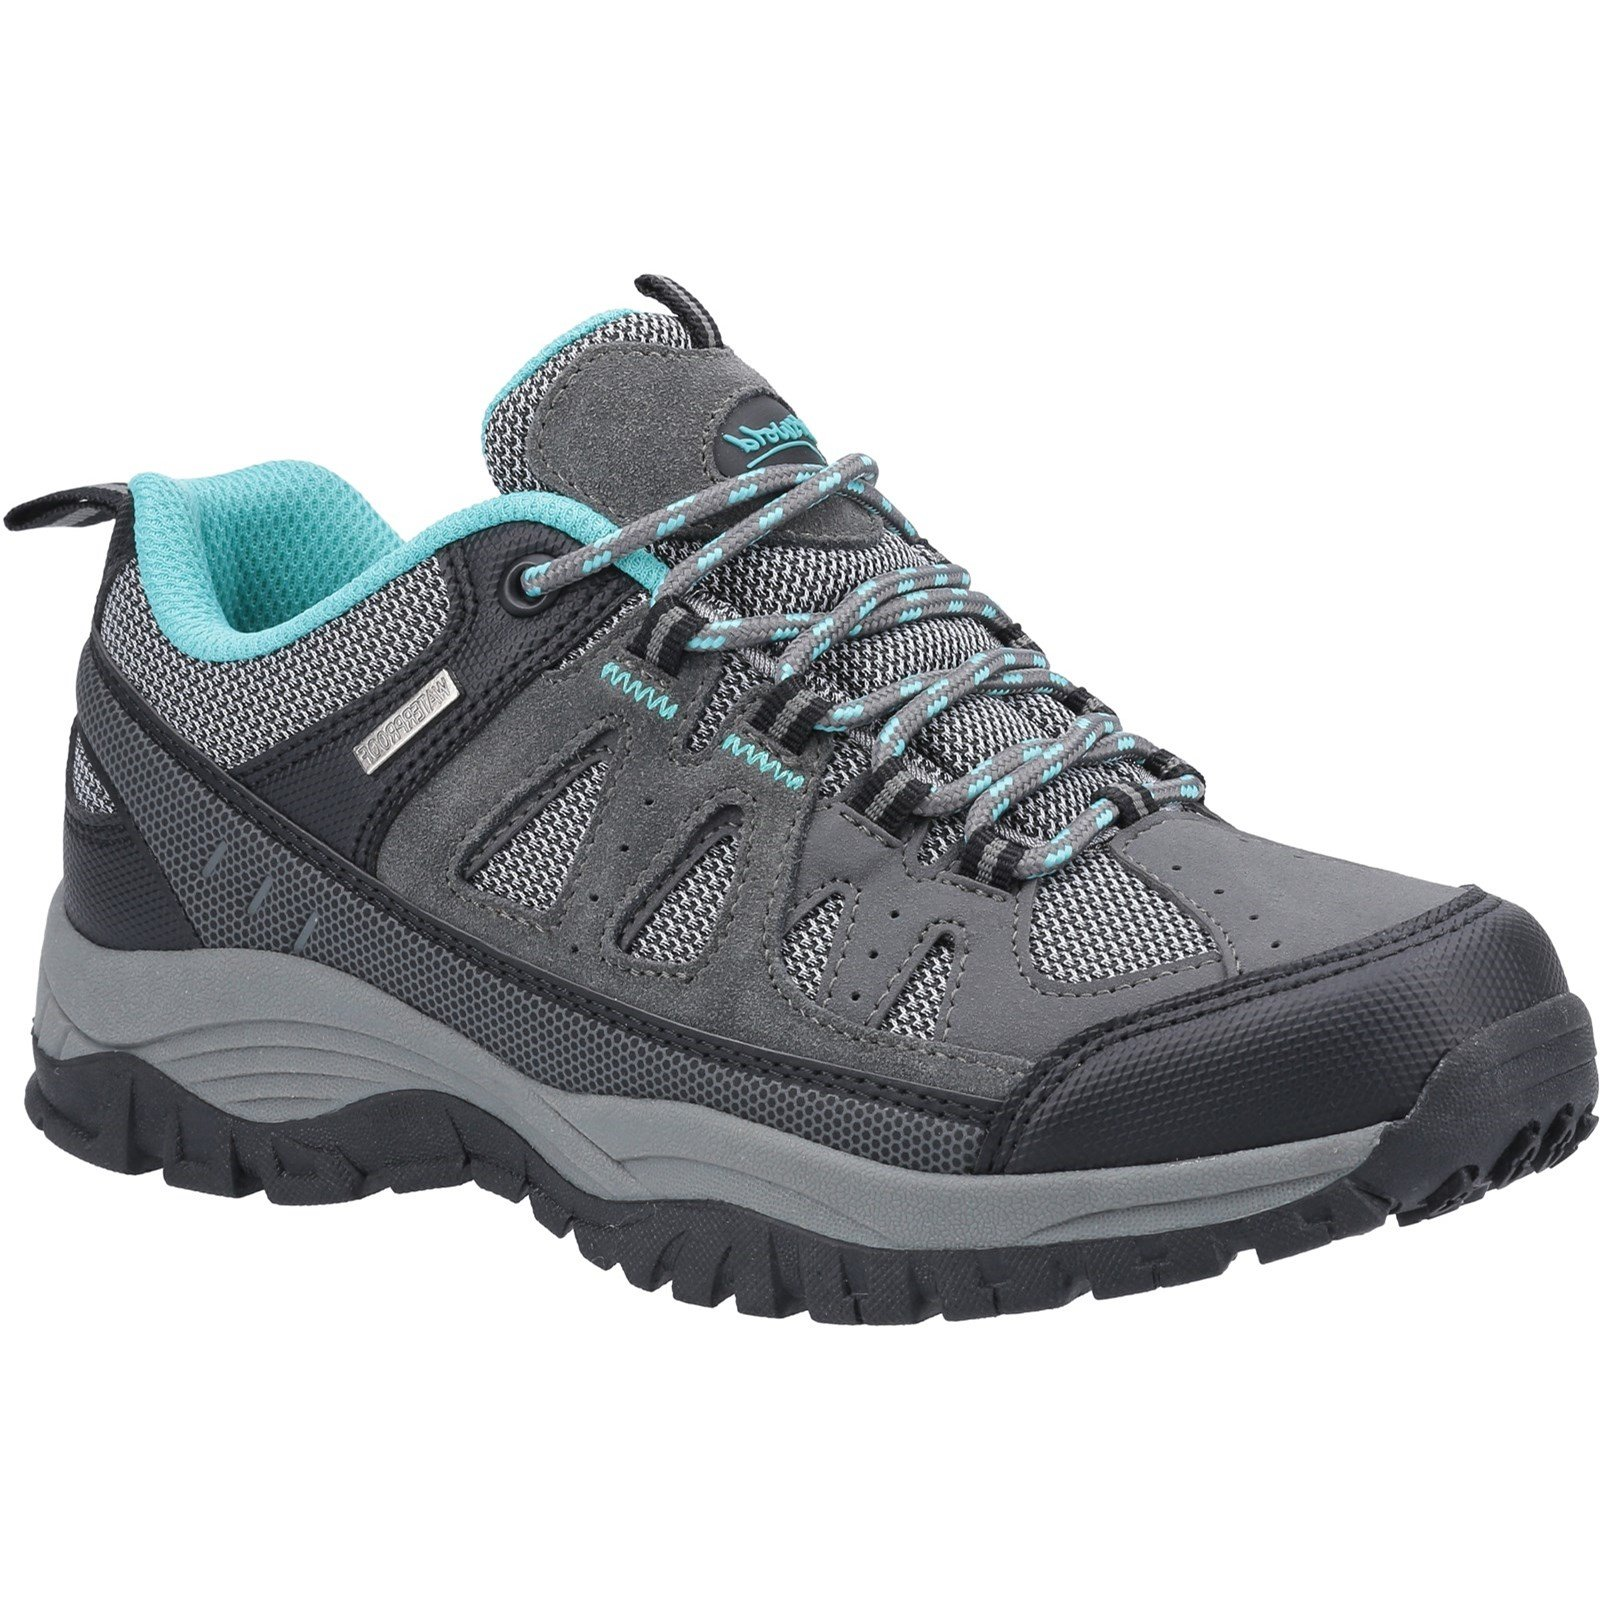 Cotswold Women's Maisemore Low Hiking Boot Grey 32988 - Grey 6